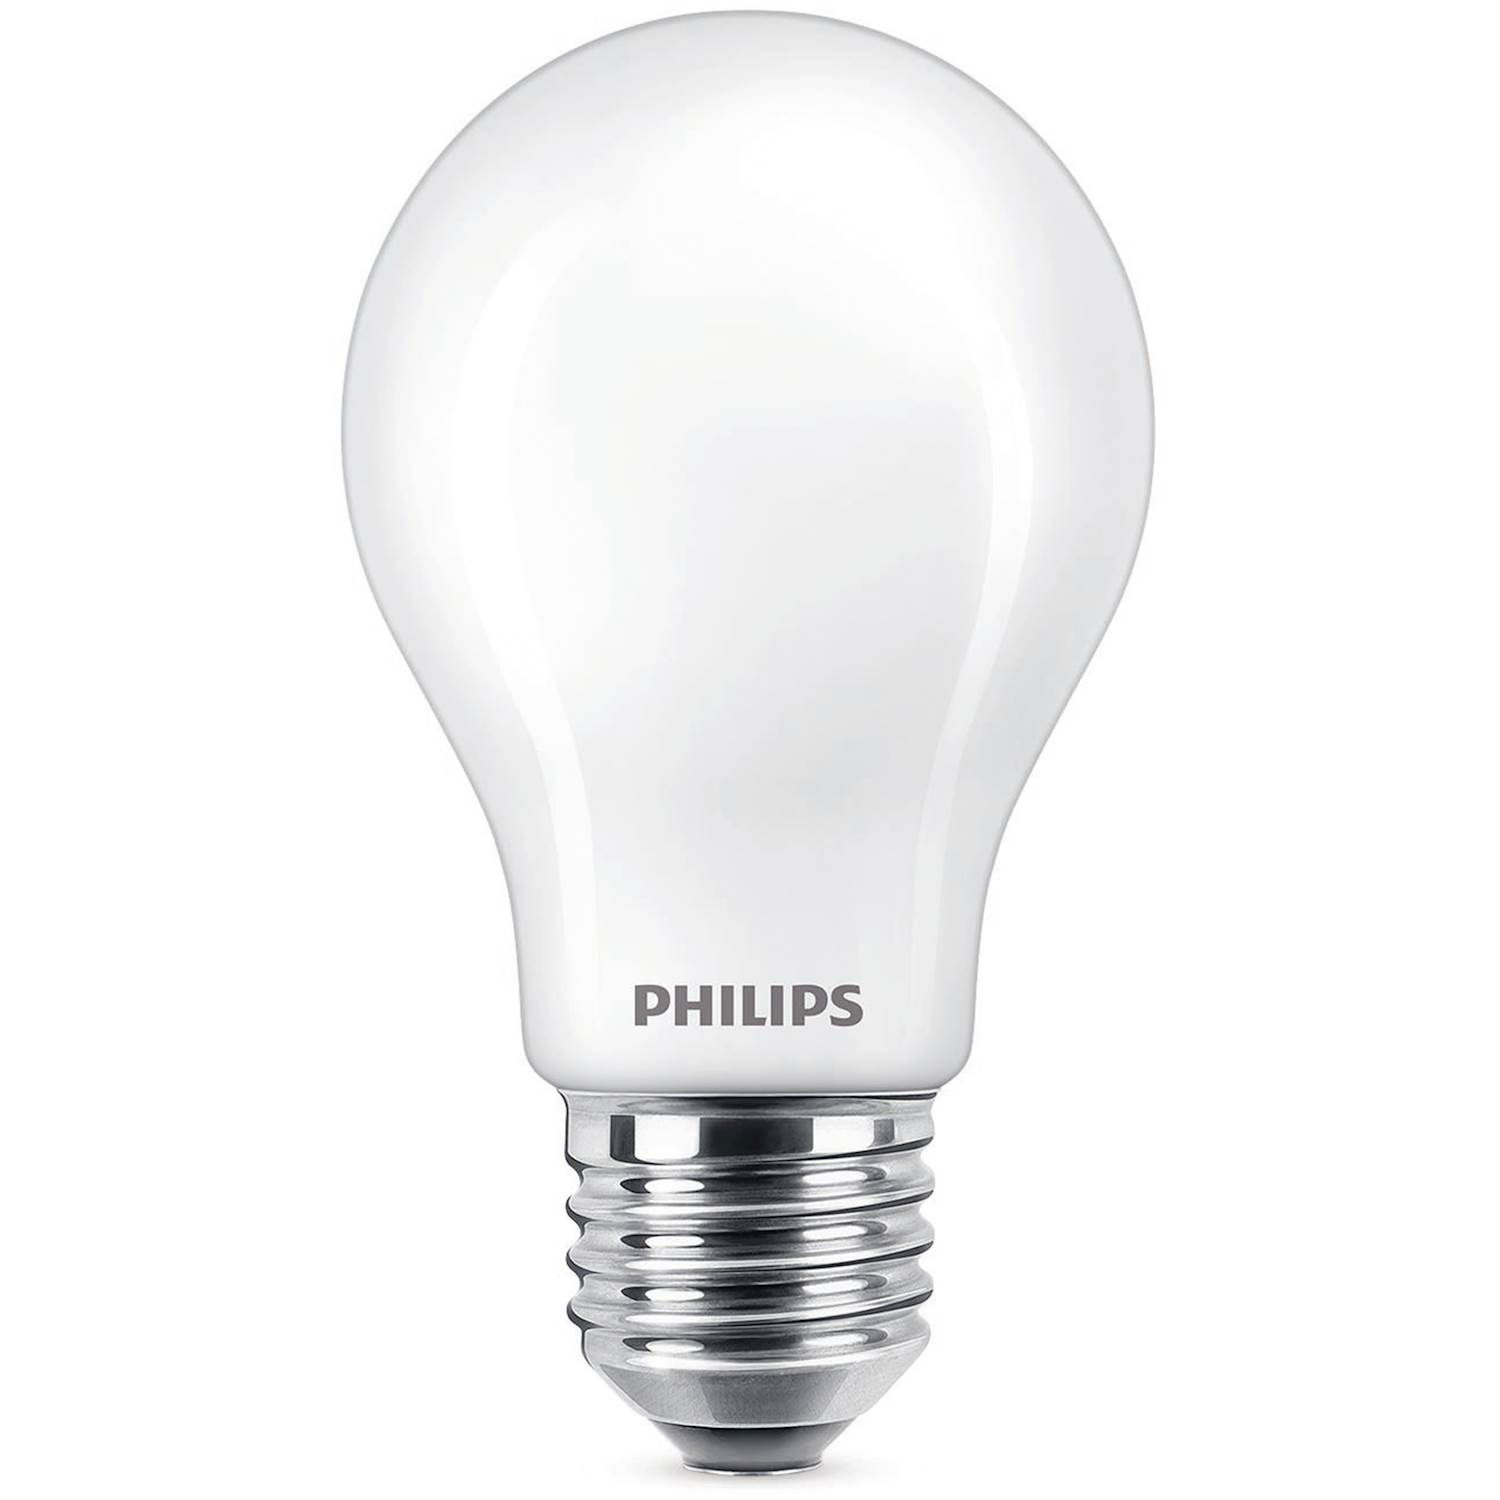 Philips NORMAL 75W E27 VV FROSTAD ND